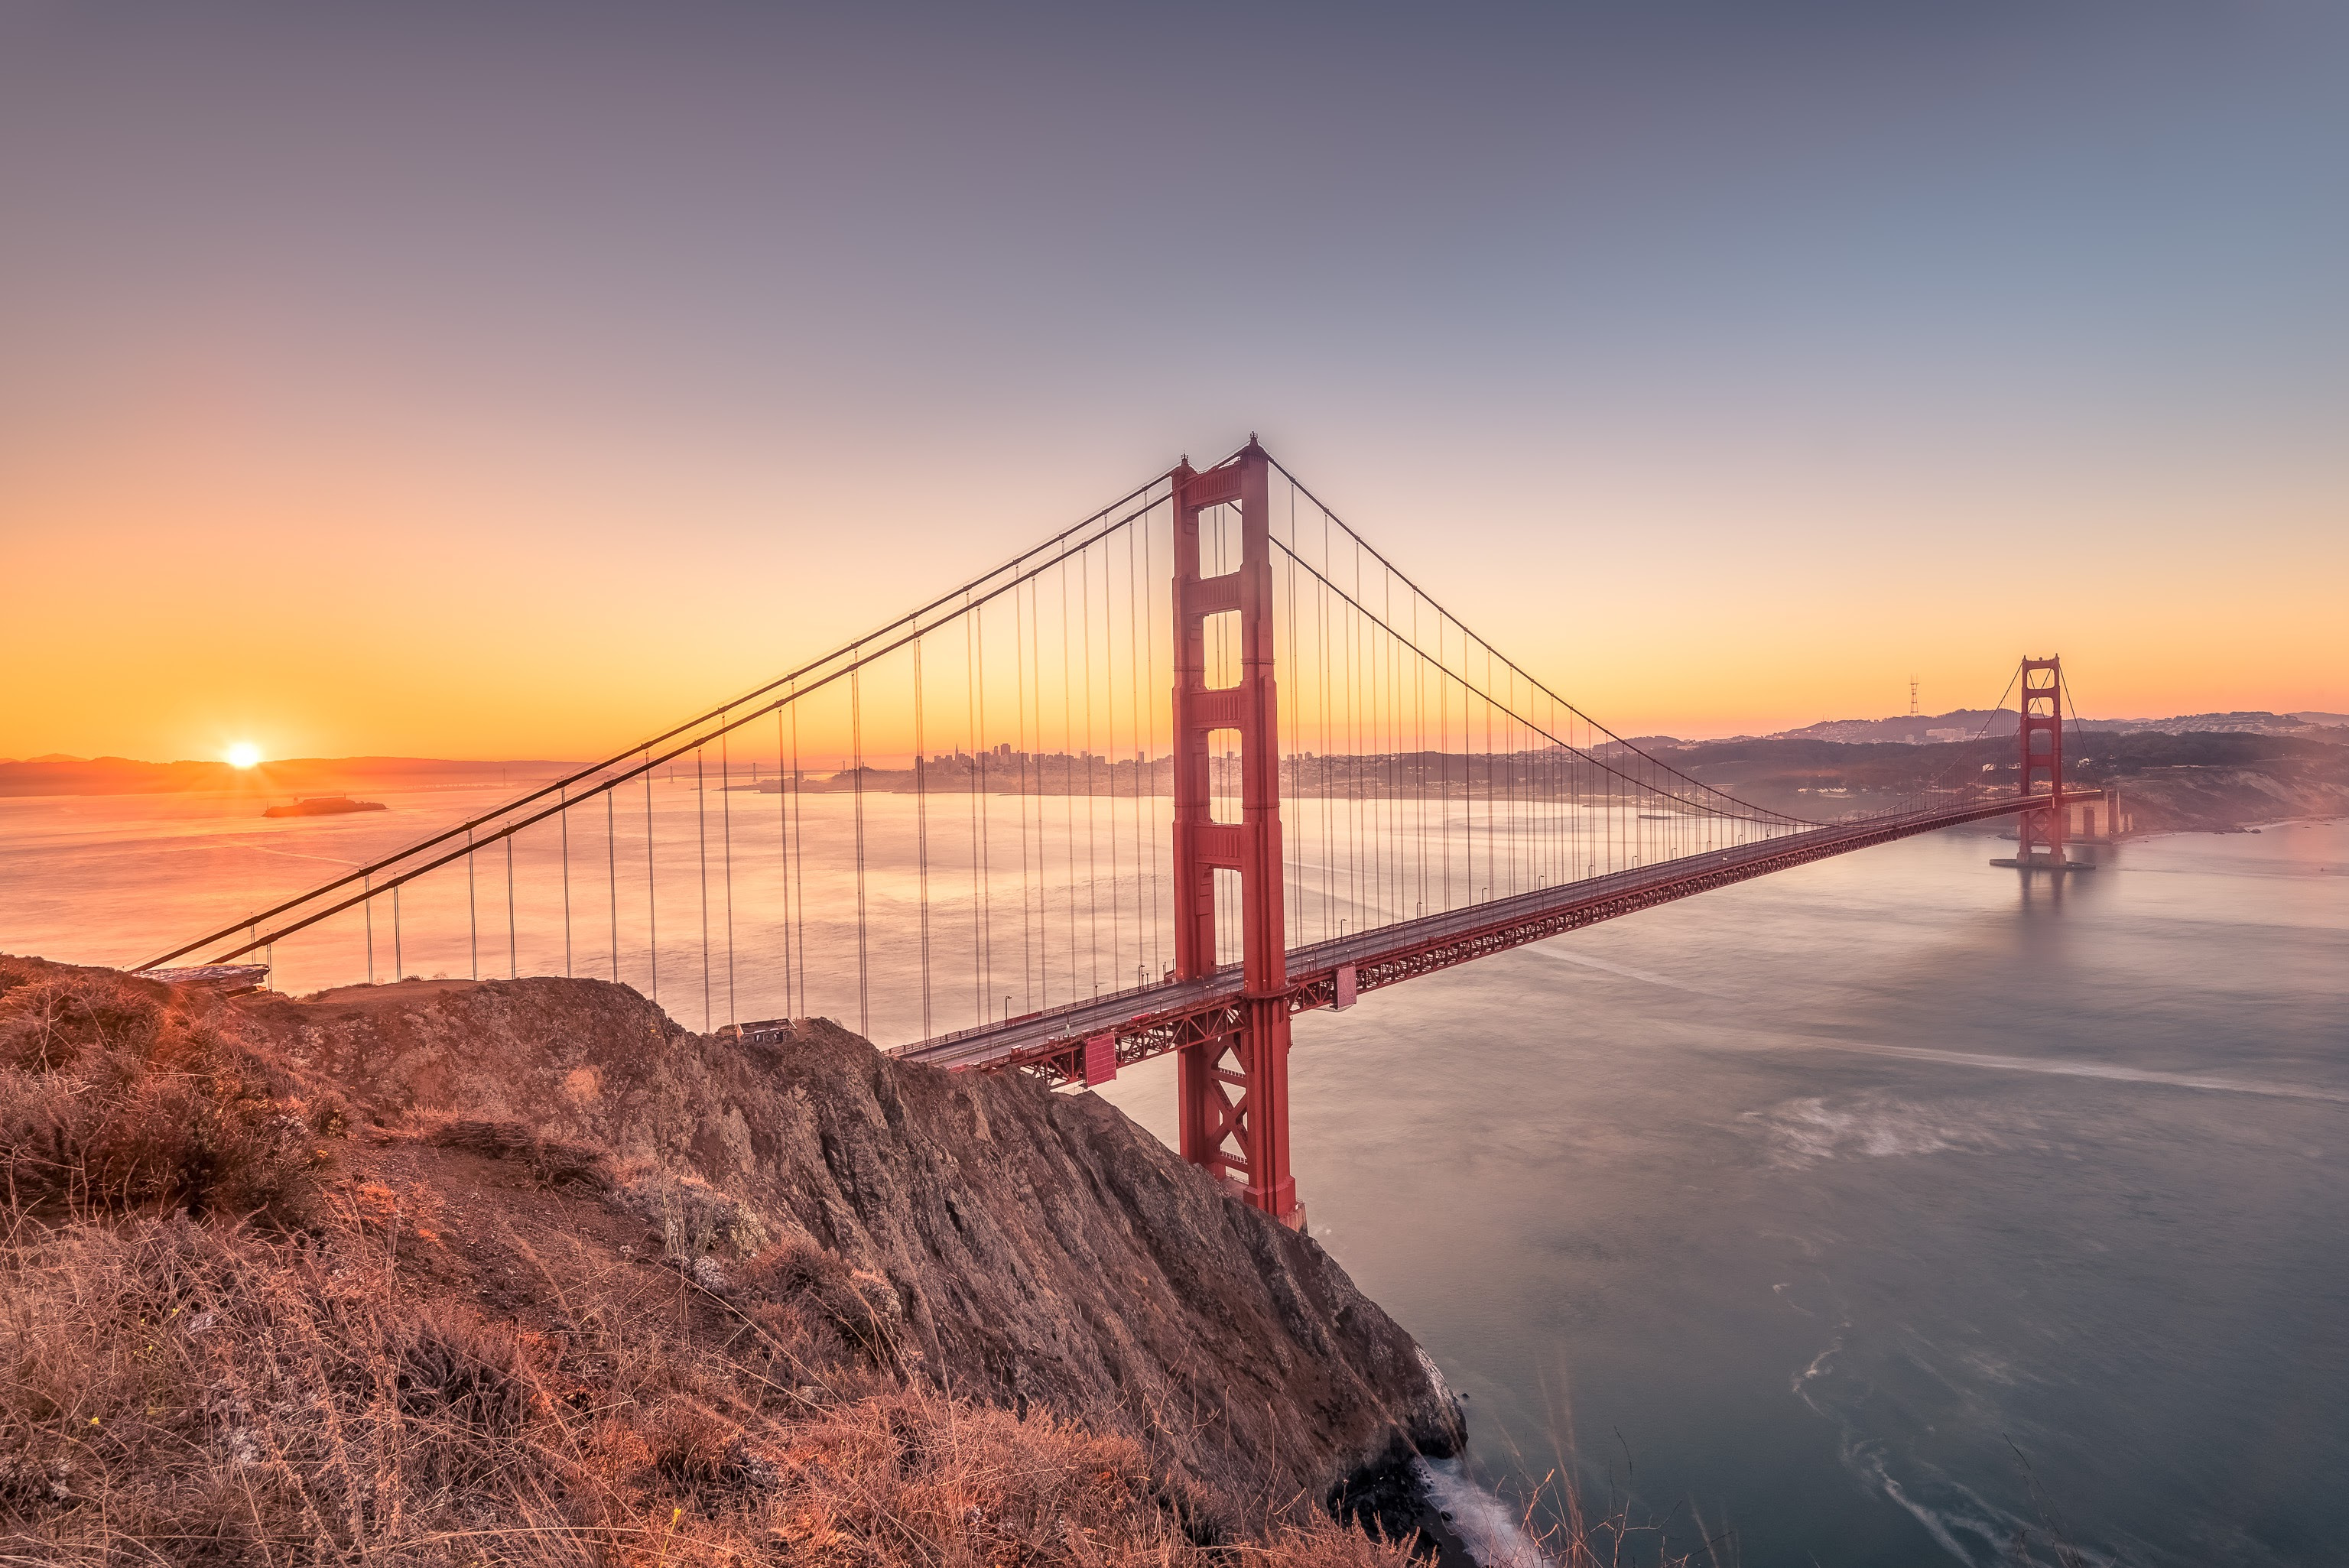 sunrise pictures golden gate - HD3072×2051